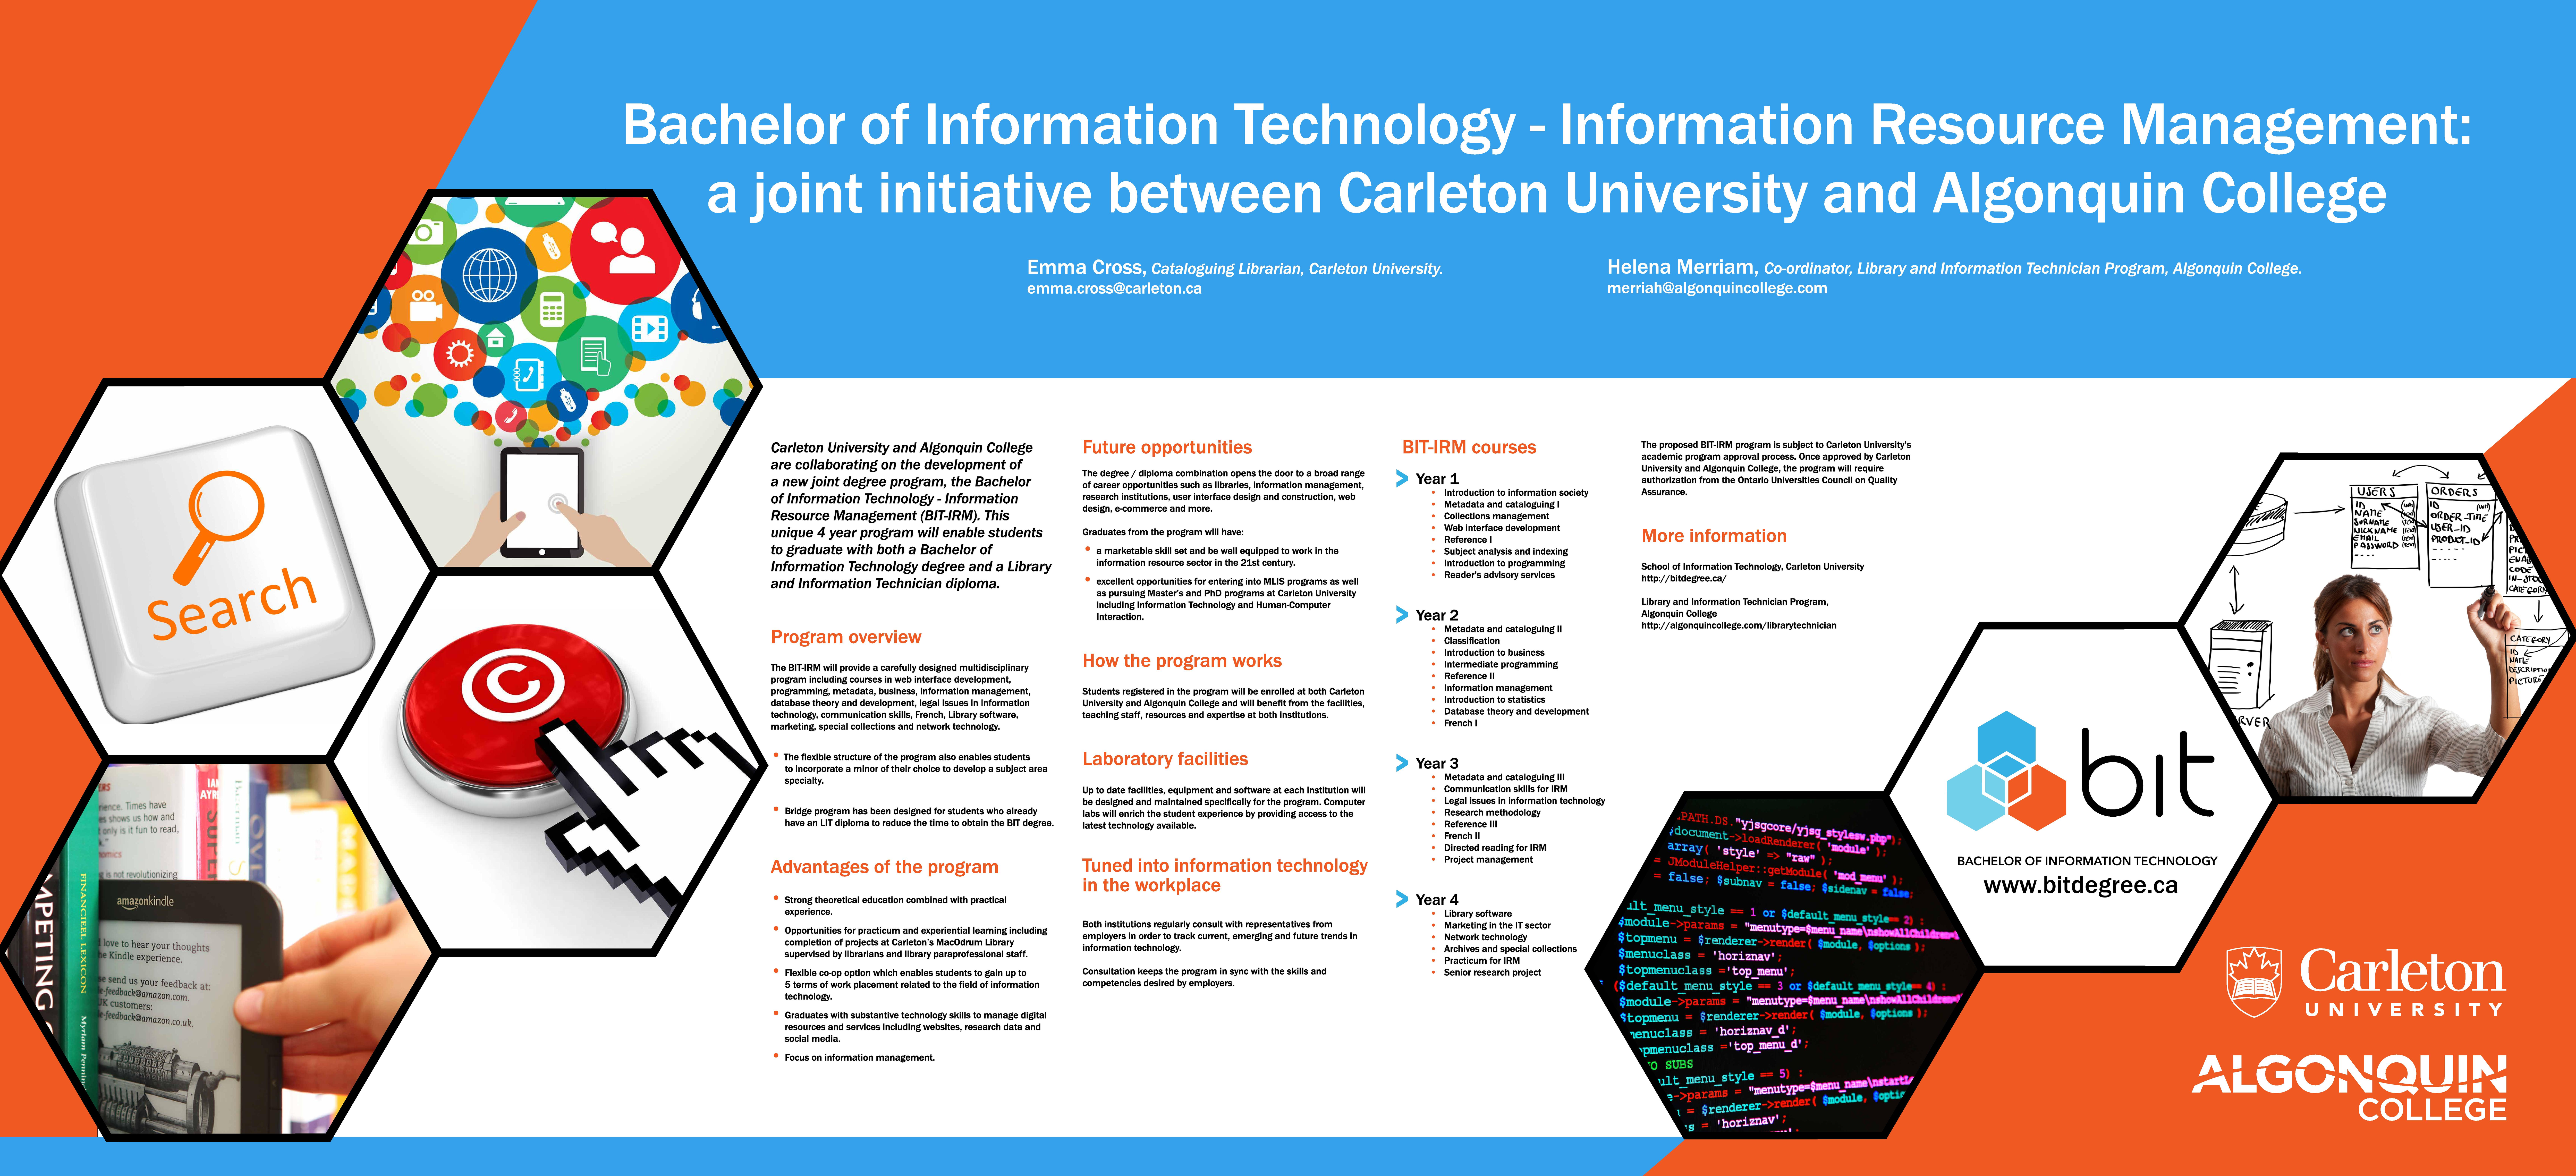 Information Technology colleges with communication majors